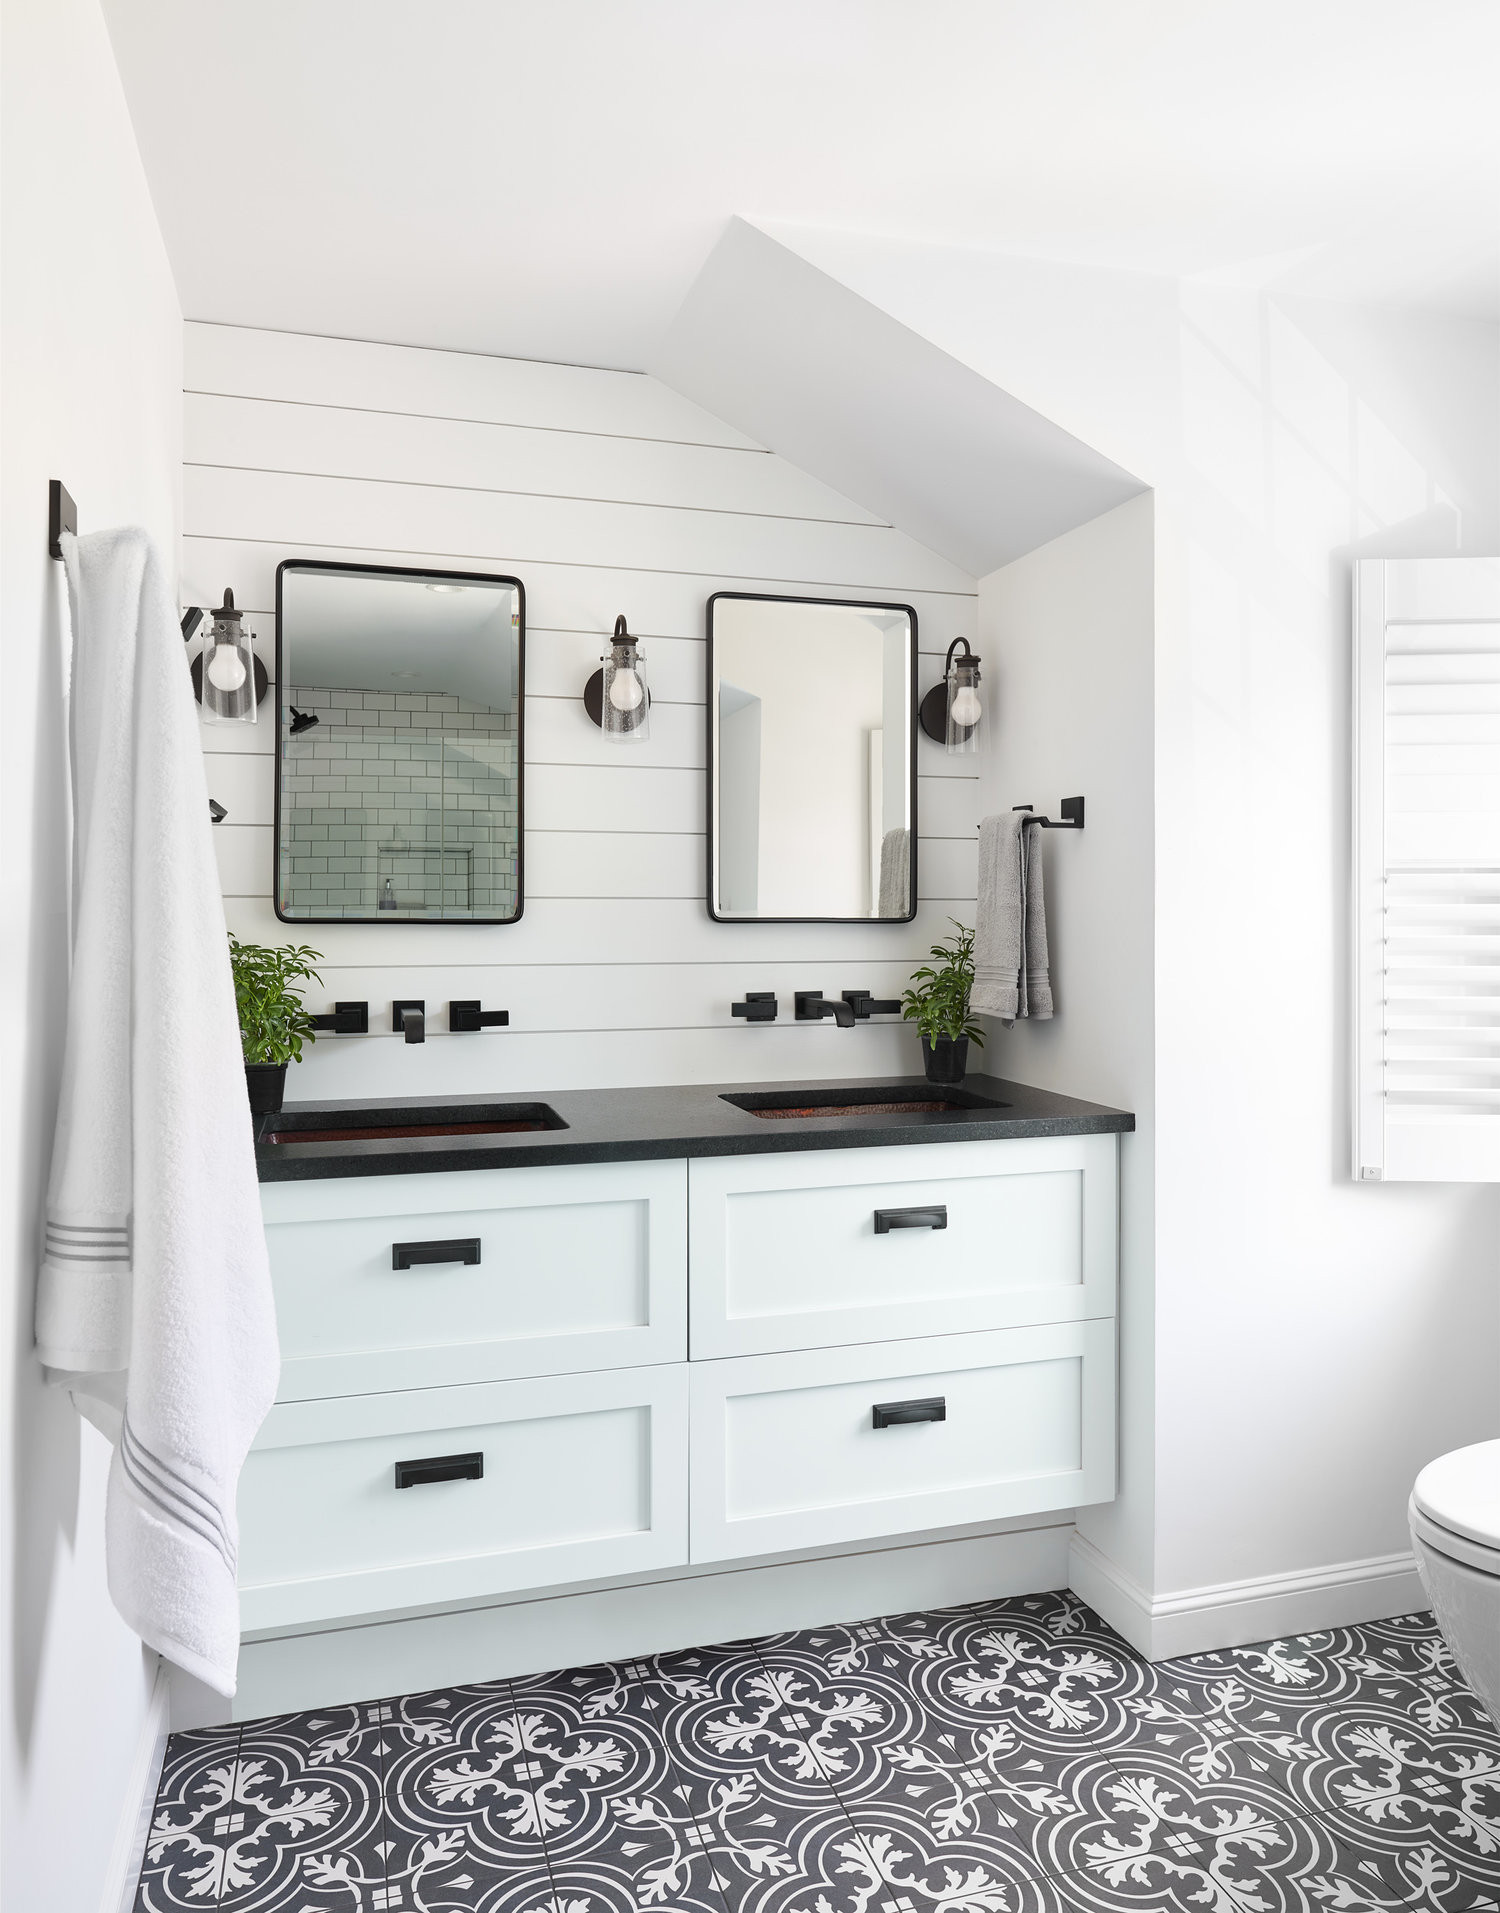 75 Beautiful Shiplap Wall Bathroom Pictures Ideas February 2021 Houzz